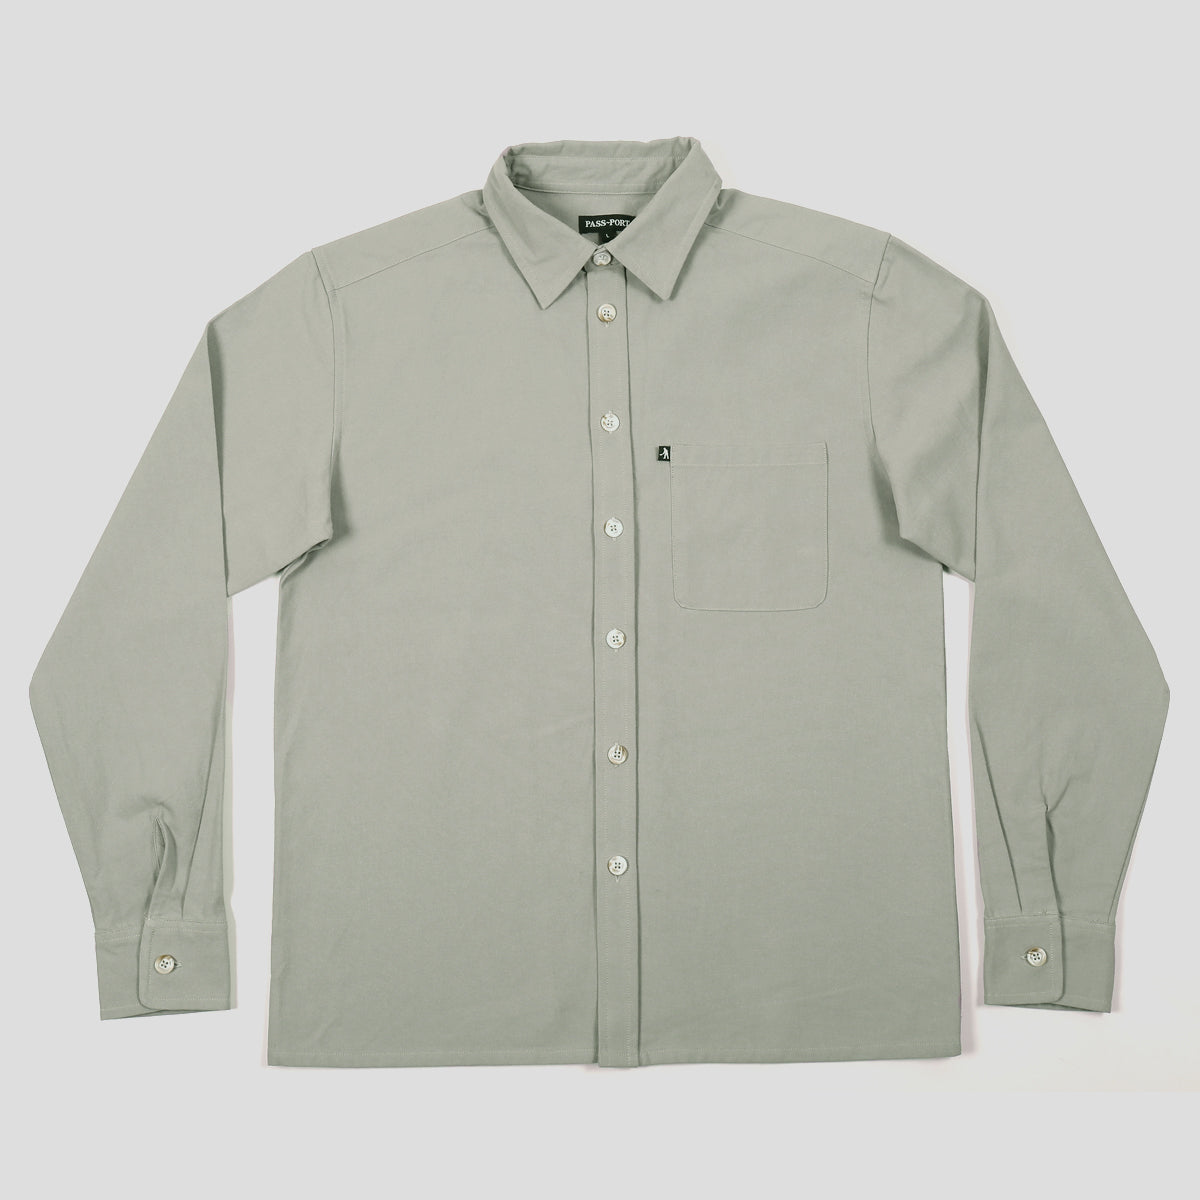 "PASS~PORT ""WORKERS"" SHIRT L/S GREY"